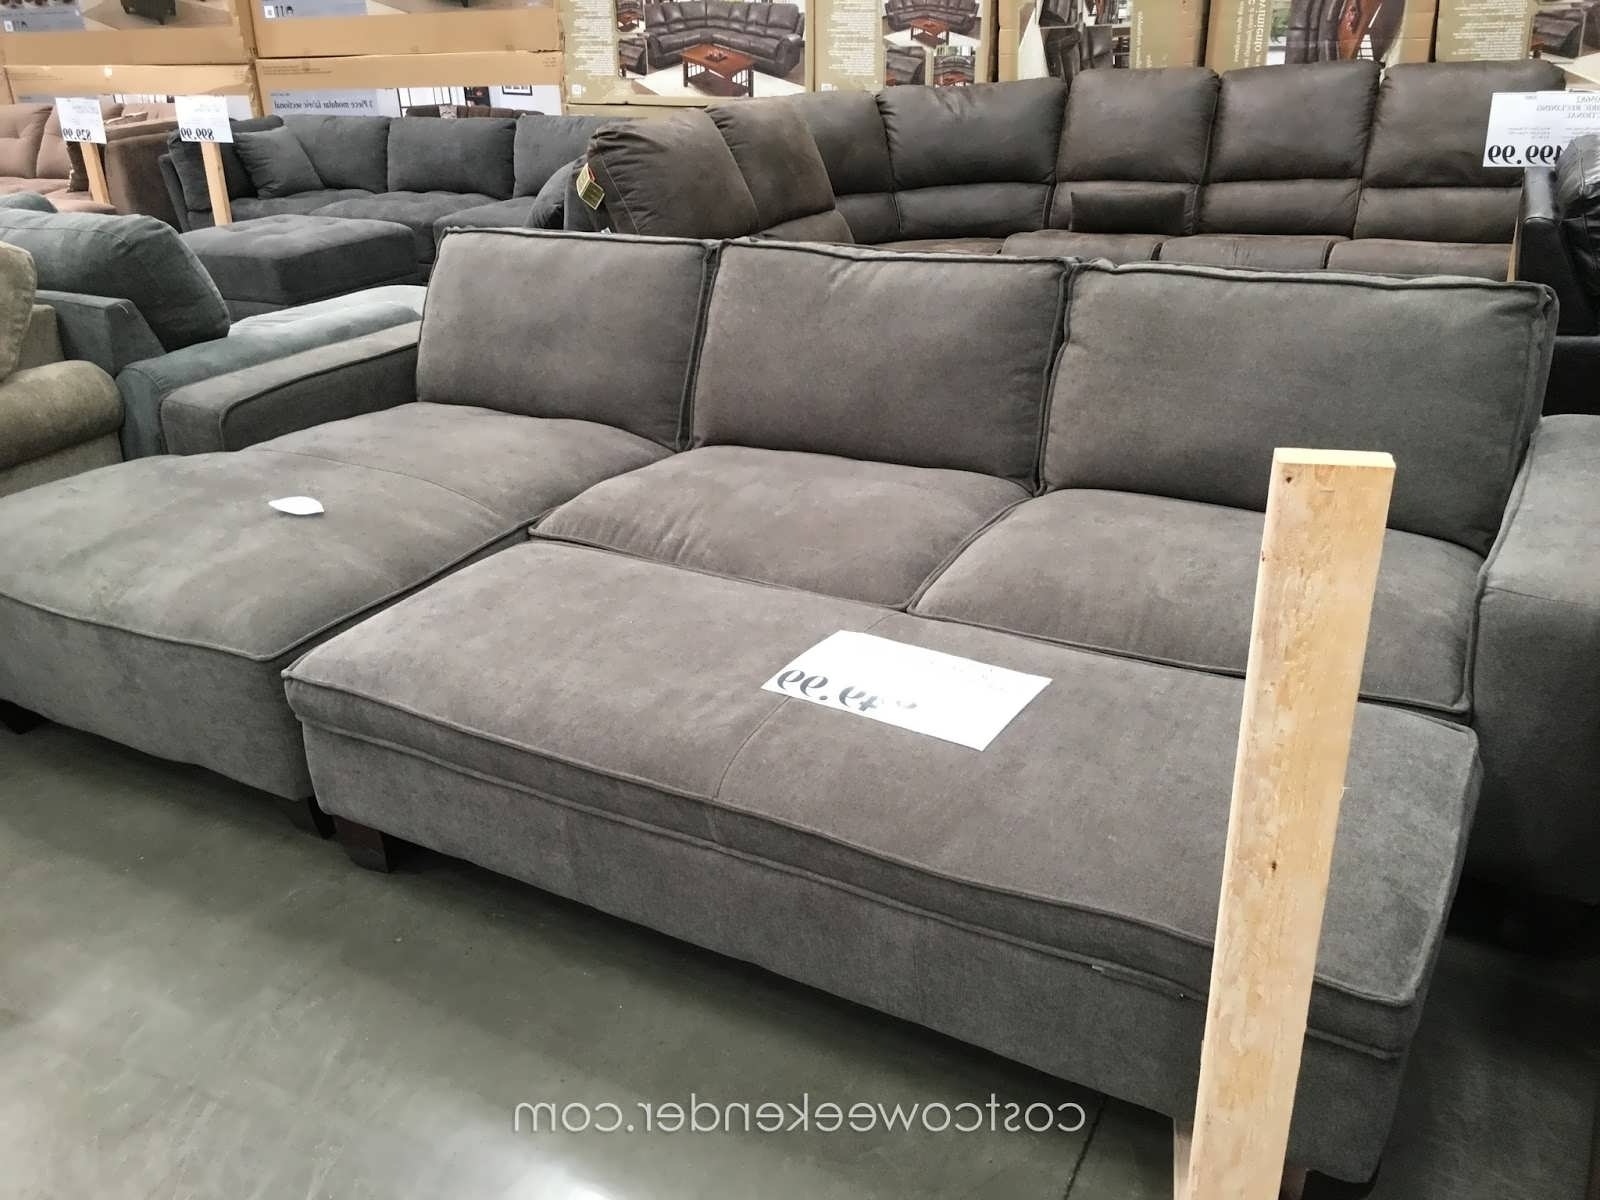 Most Recently Released Deep Sectional Sofas With Chaise With Sofa : L Sofa Modular Sectional Sofa Couch With Chaise Sectional (View 2 of 15)